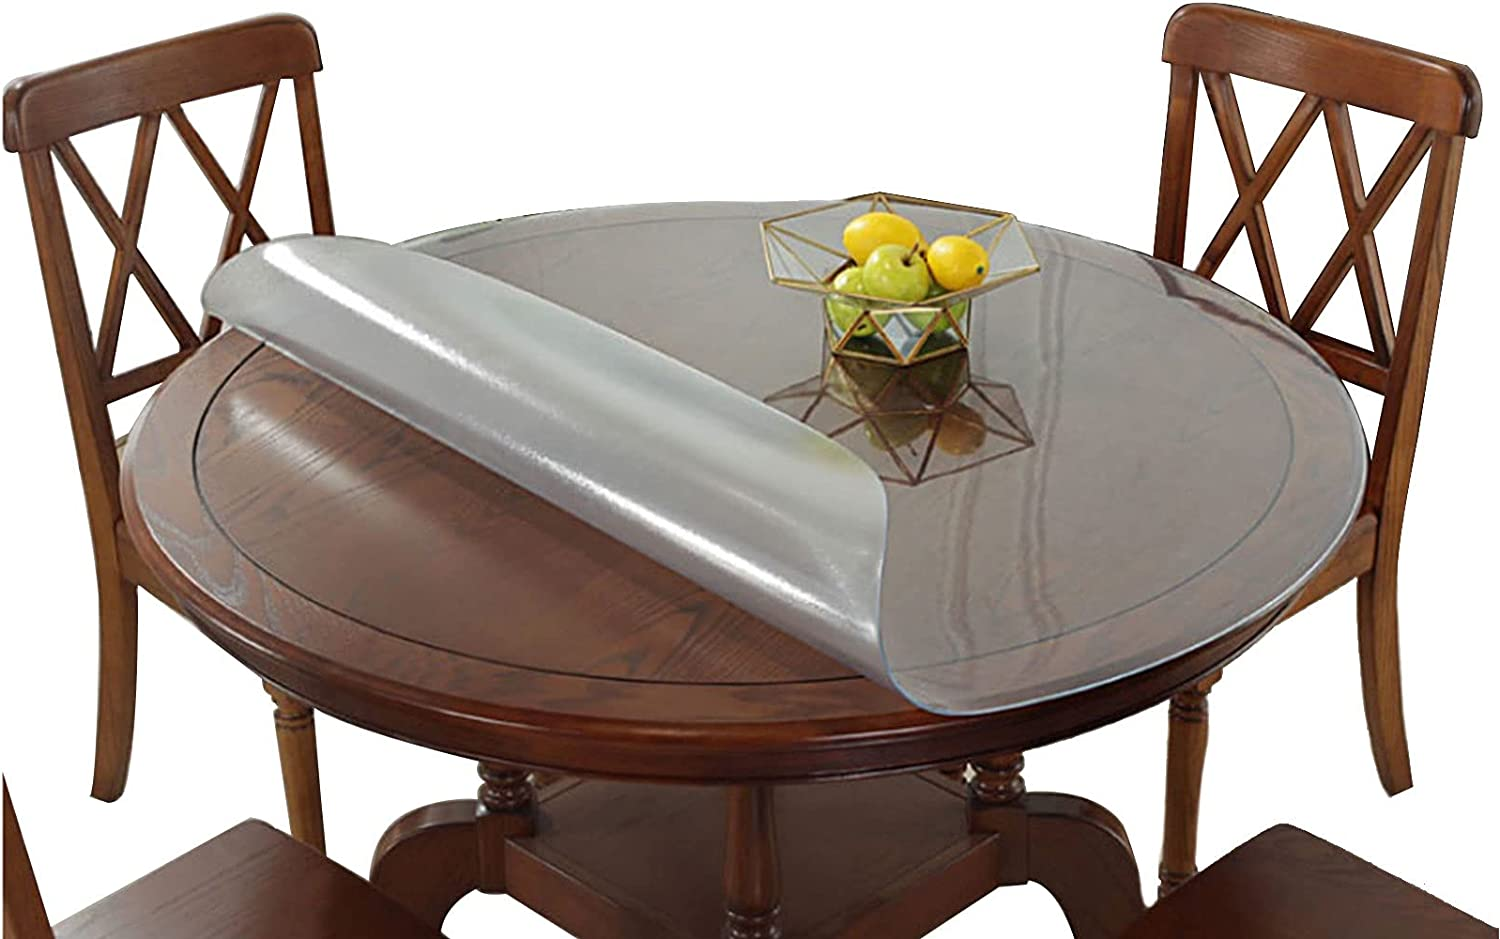 DTDMY Round Challenge the lowest price of Japan ☆ Clear PVC Tablecover Plastic Waterproof Cloth overseas Table